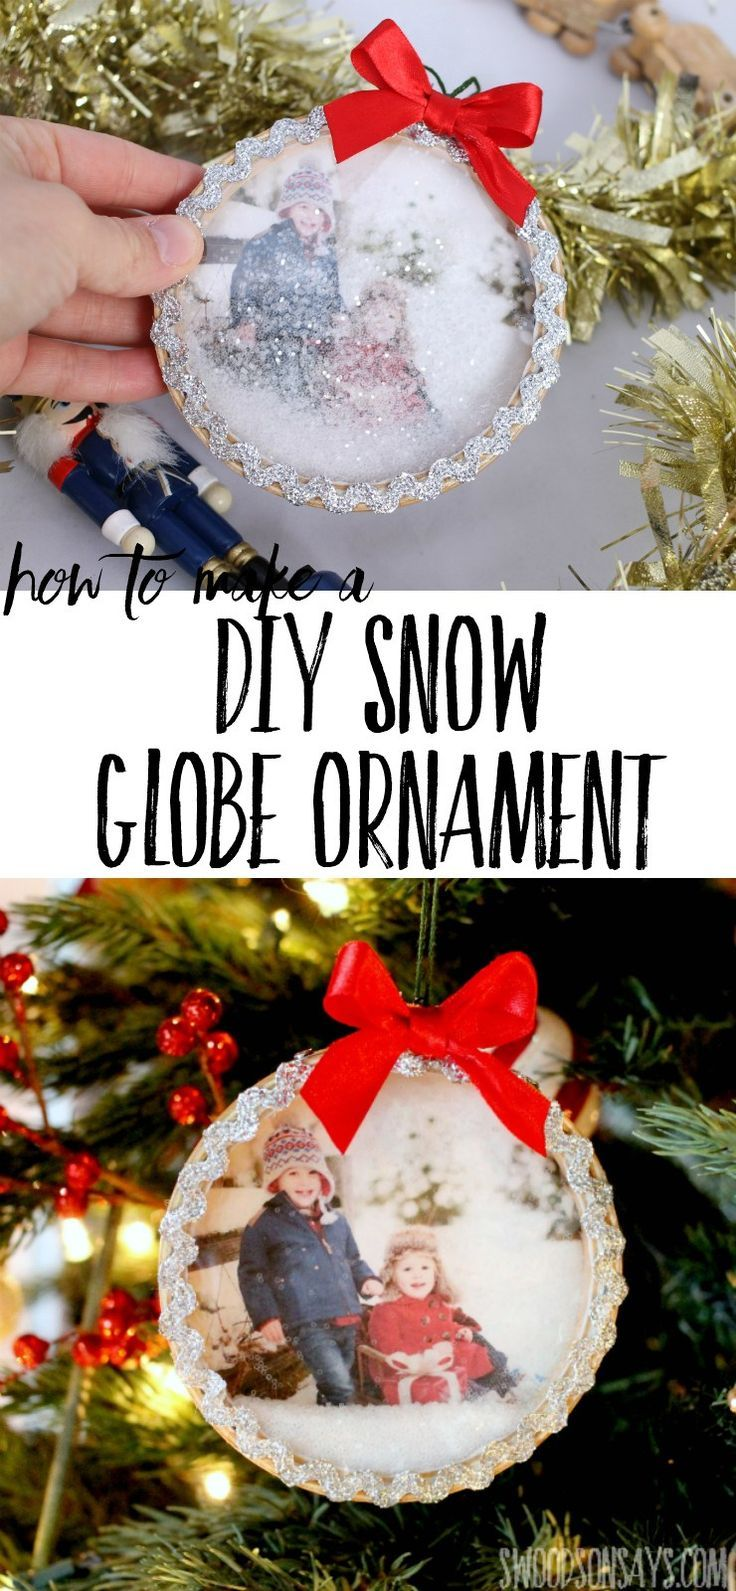 Diy Snow Globe Ornament Diy Christmas Tree Ornaments Photo Christmas Ornaments Globe Ornament